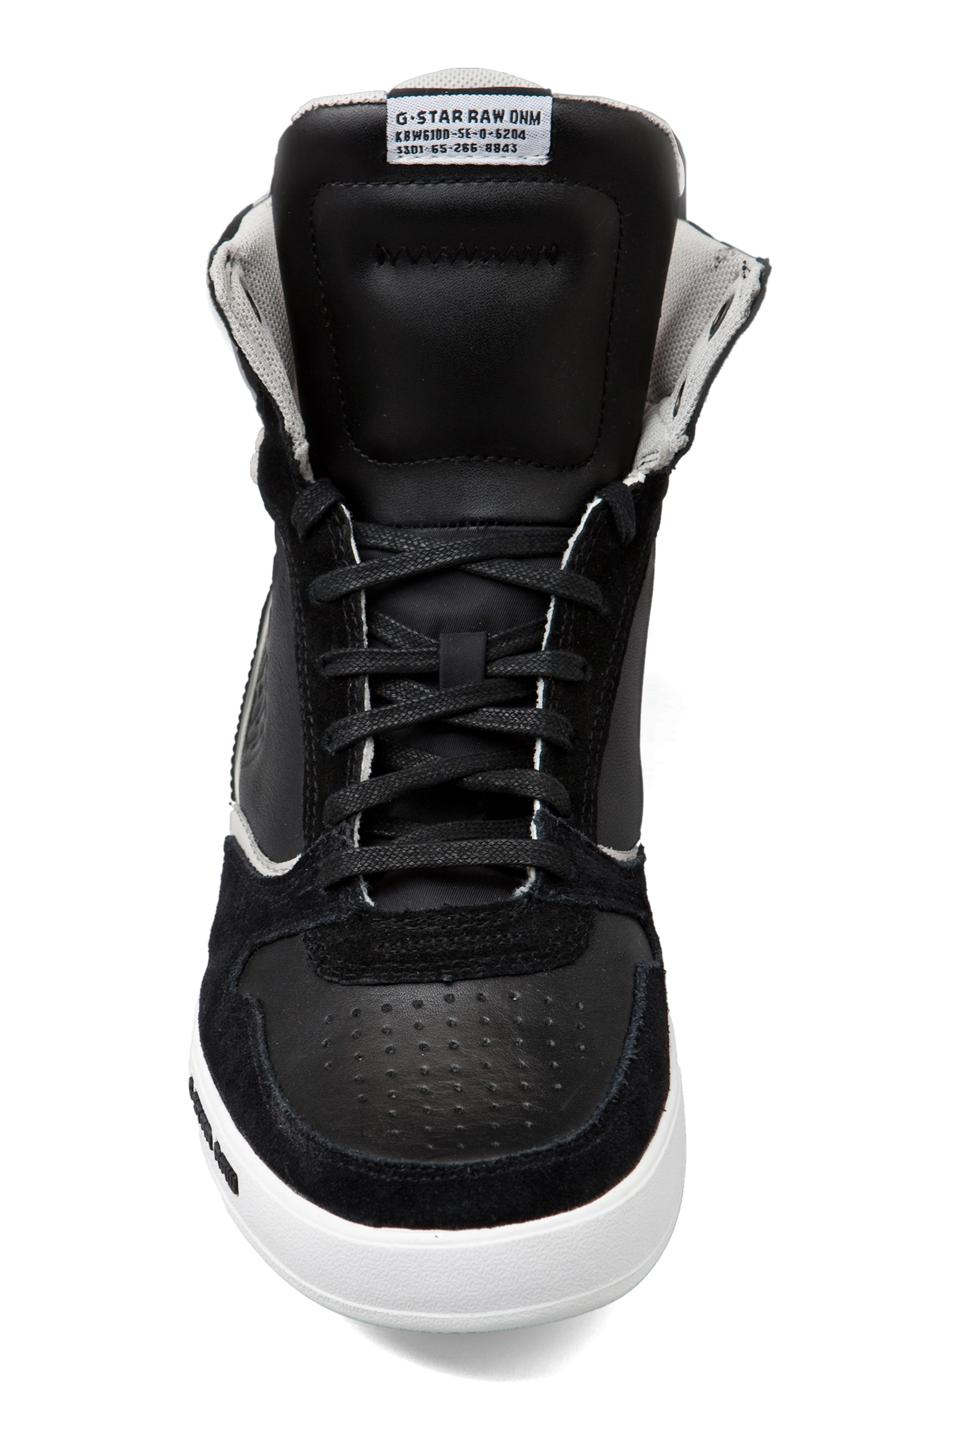 G-Star Yard Pyro Hi Top Sneaker in Black Leather/Suede